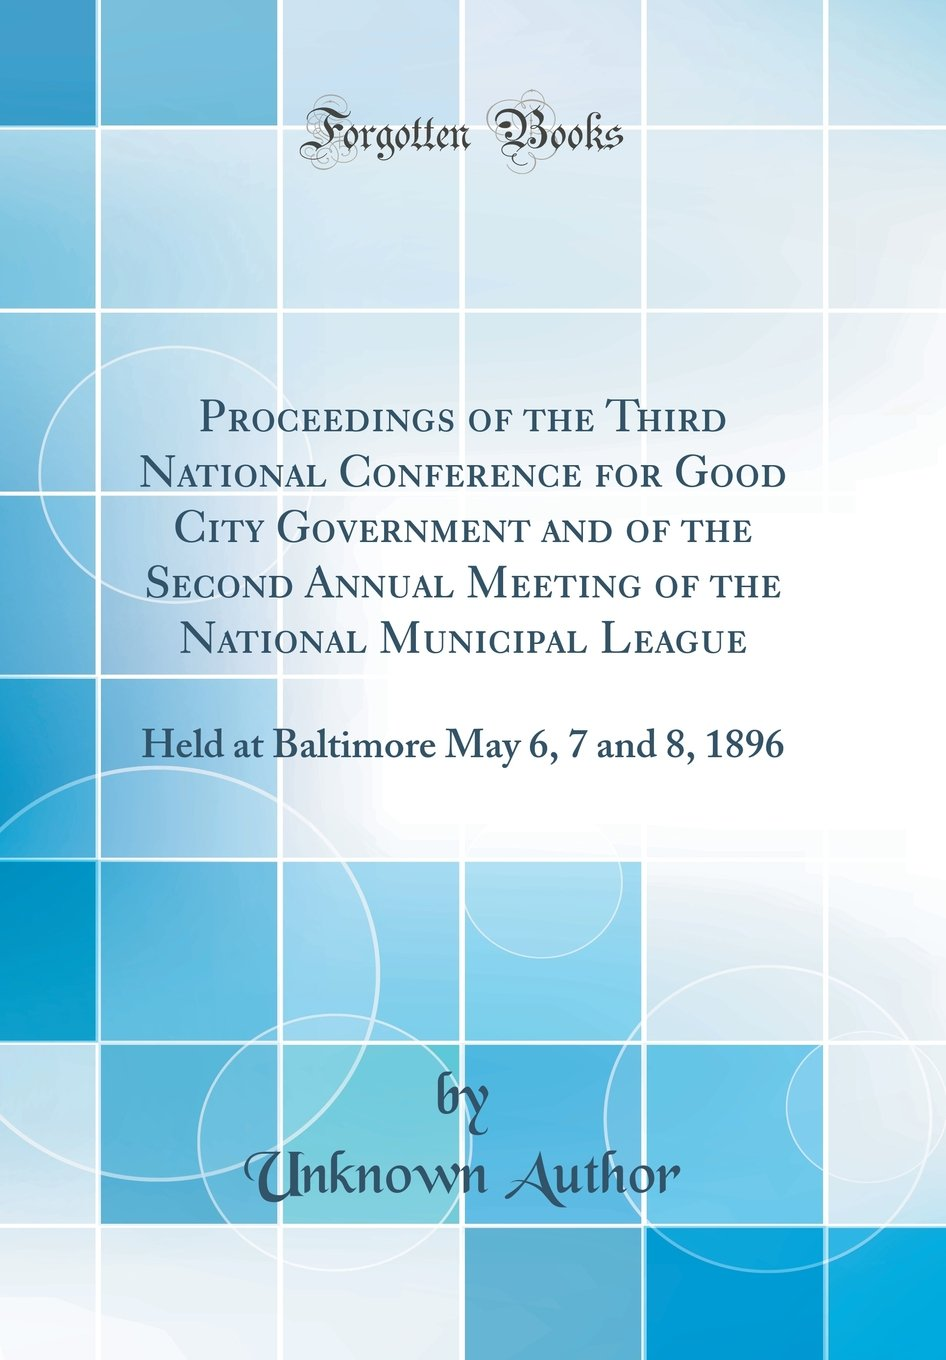 Proceedings of the Third National Conference for Good City Government and of the Second Annual Meeting of the National Municipal League: Held at Baltimore May 6, 7 and 8, 1896 (Classic Reprint) PDF